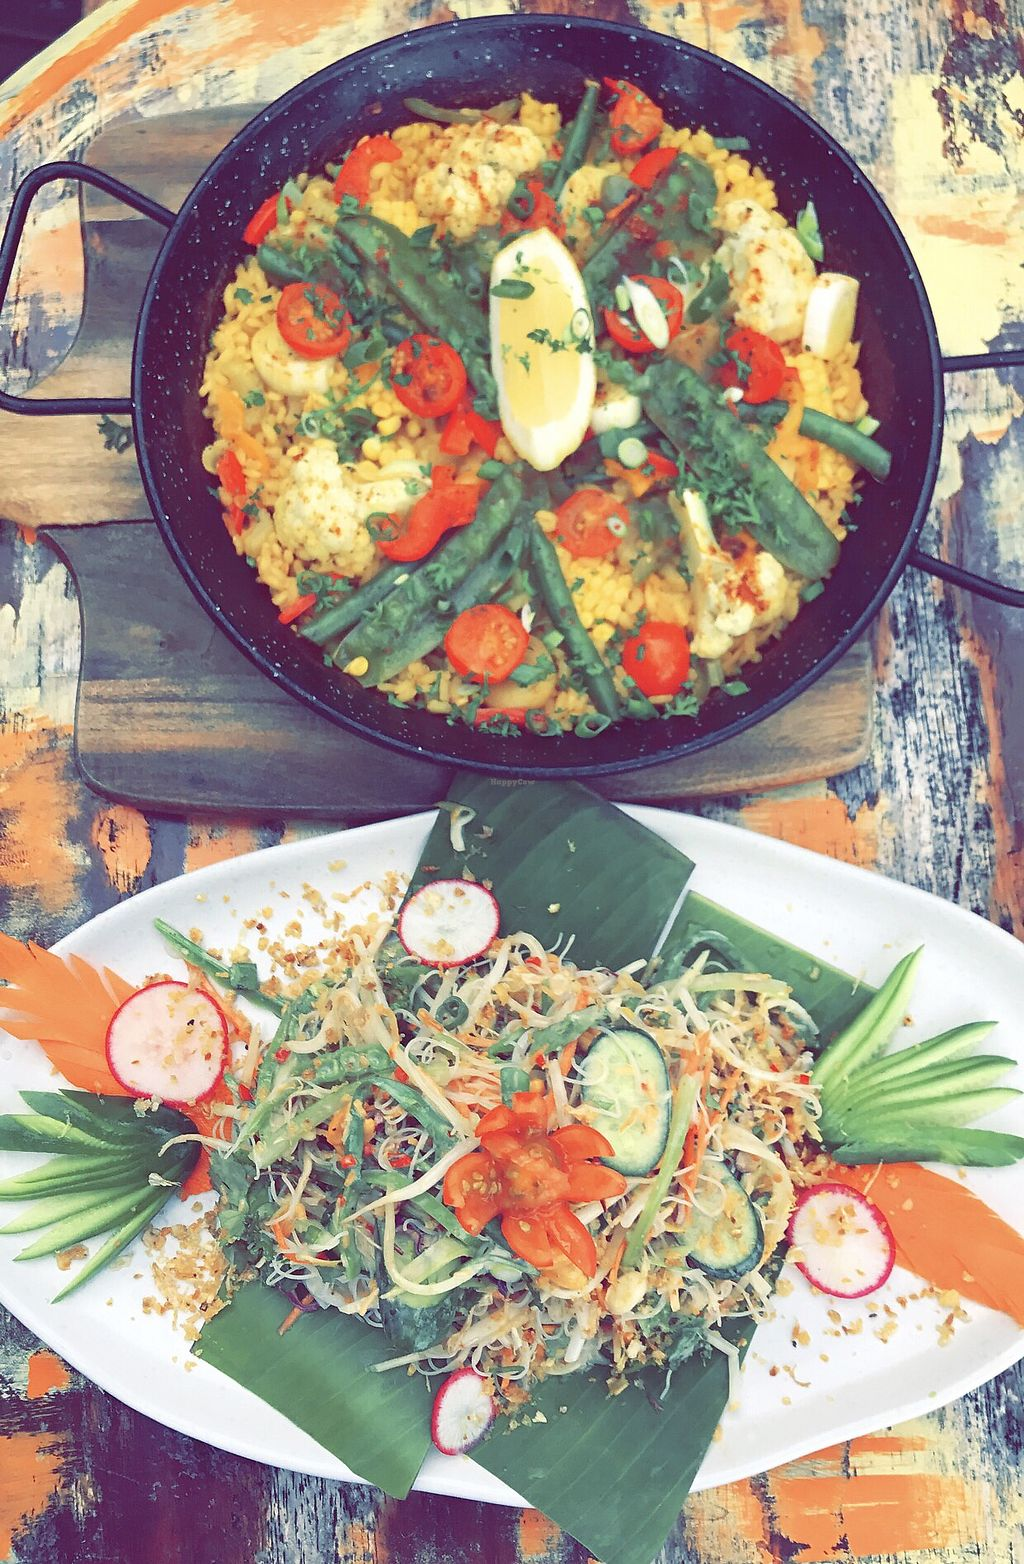 """Photo of Coco Mojo Bar & Grill  by <a href=""""/members/profile/marykochse"""">marykochse</a> <br/>Paella and Thai noodle salad  <br/> February 2, 2018  - <a href='/contact/abuse/image/110952/353998'>Report</a>"""